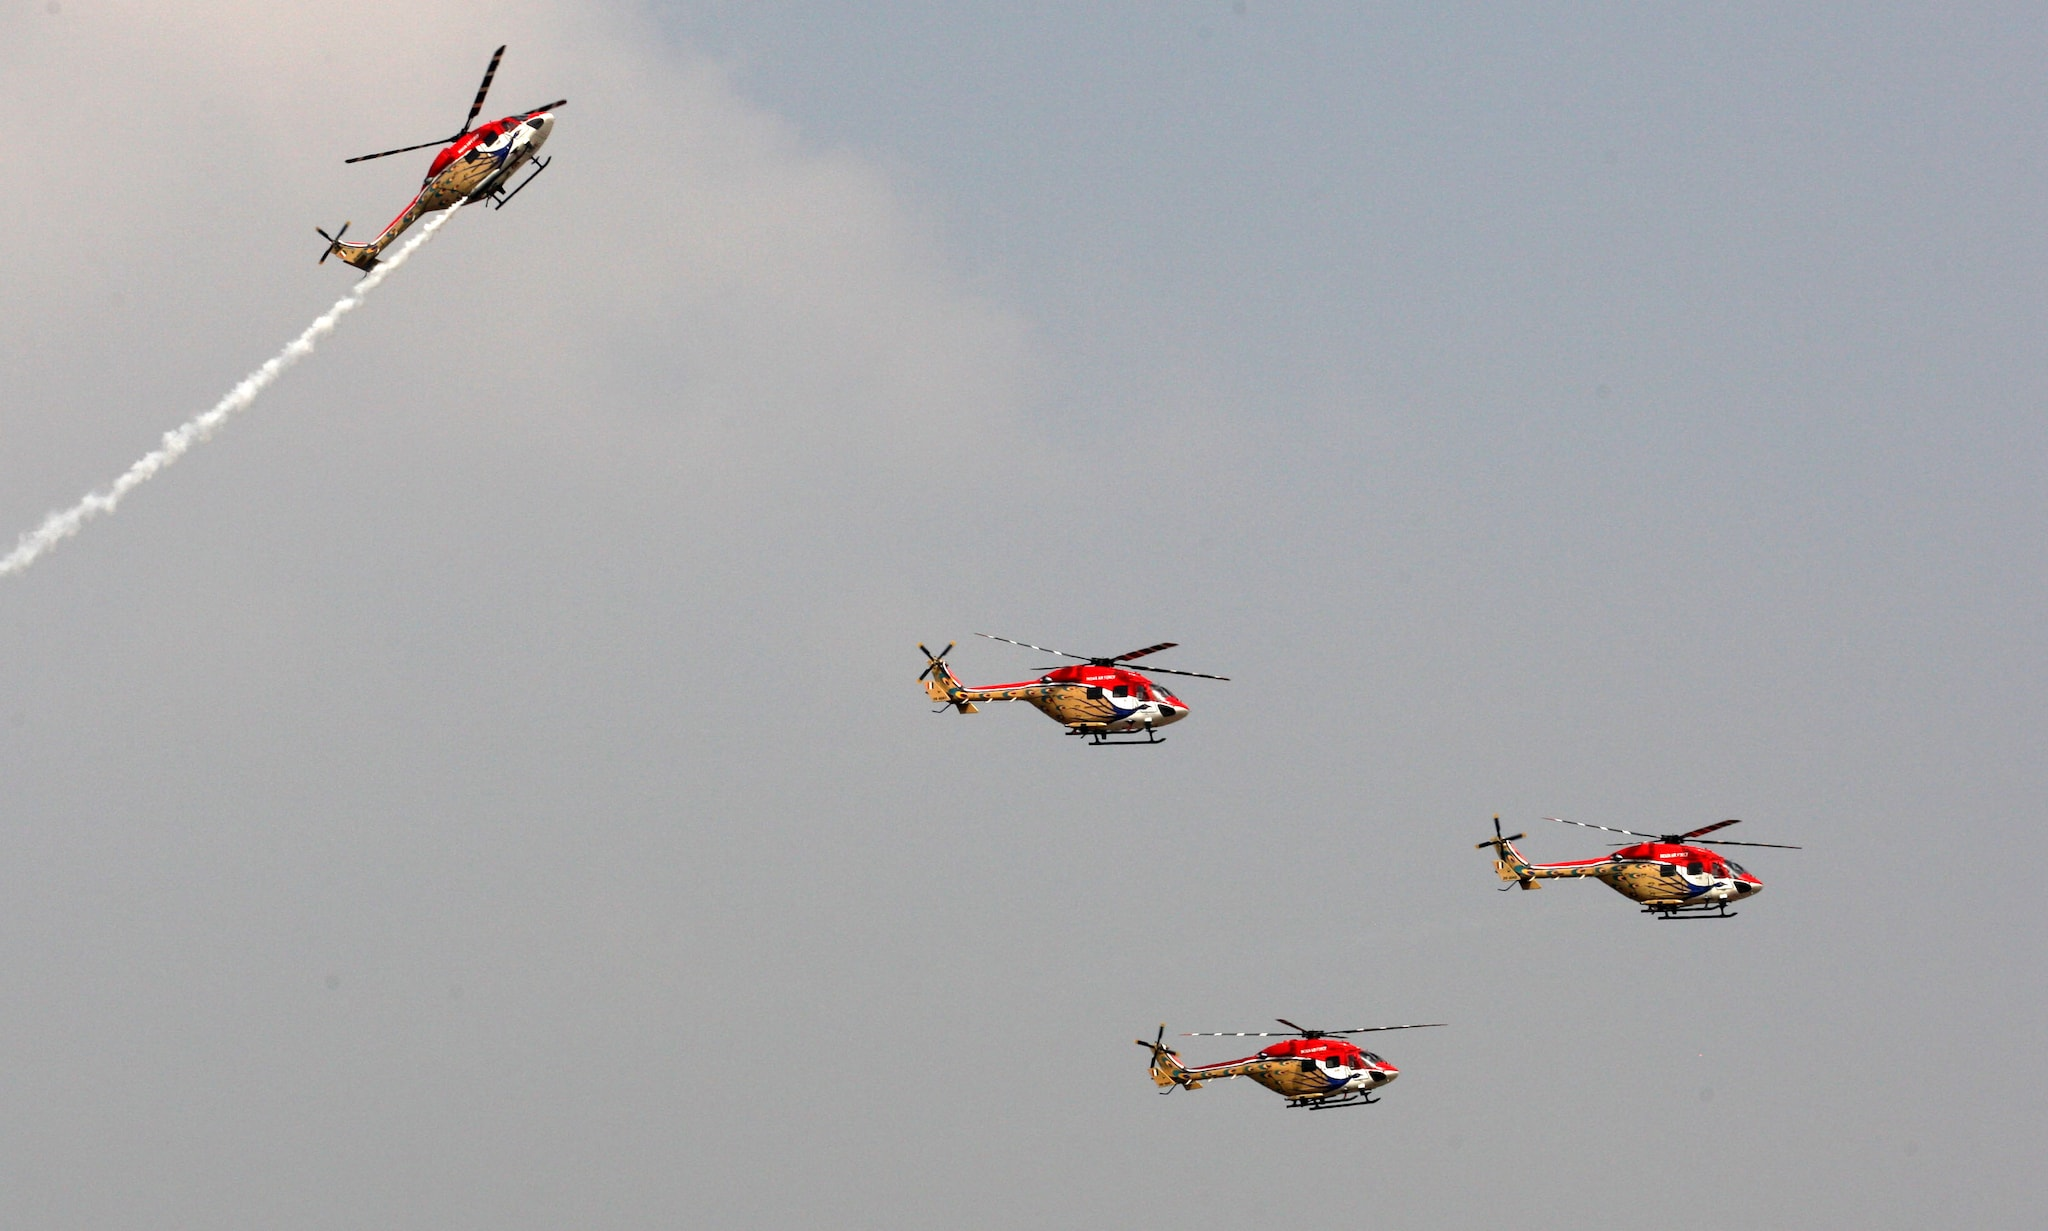 Indian Air Force Suryakiran aerobatic team performs aerobatic maneuvers ahead of Aero India 2019 at Yelahanka air base in Bengaluru.